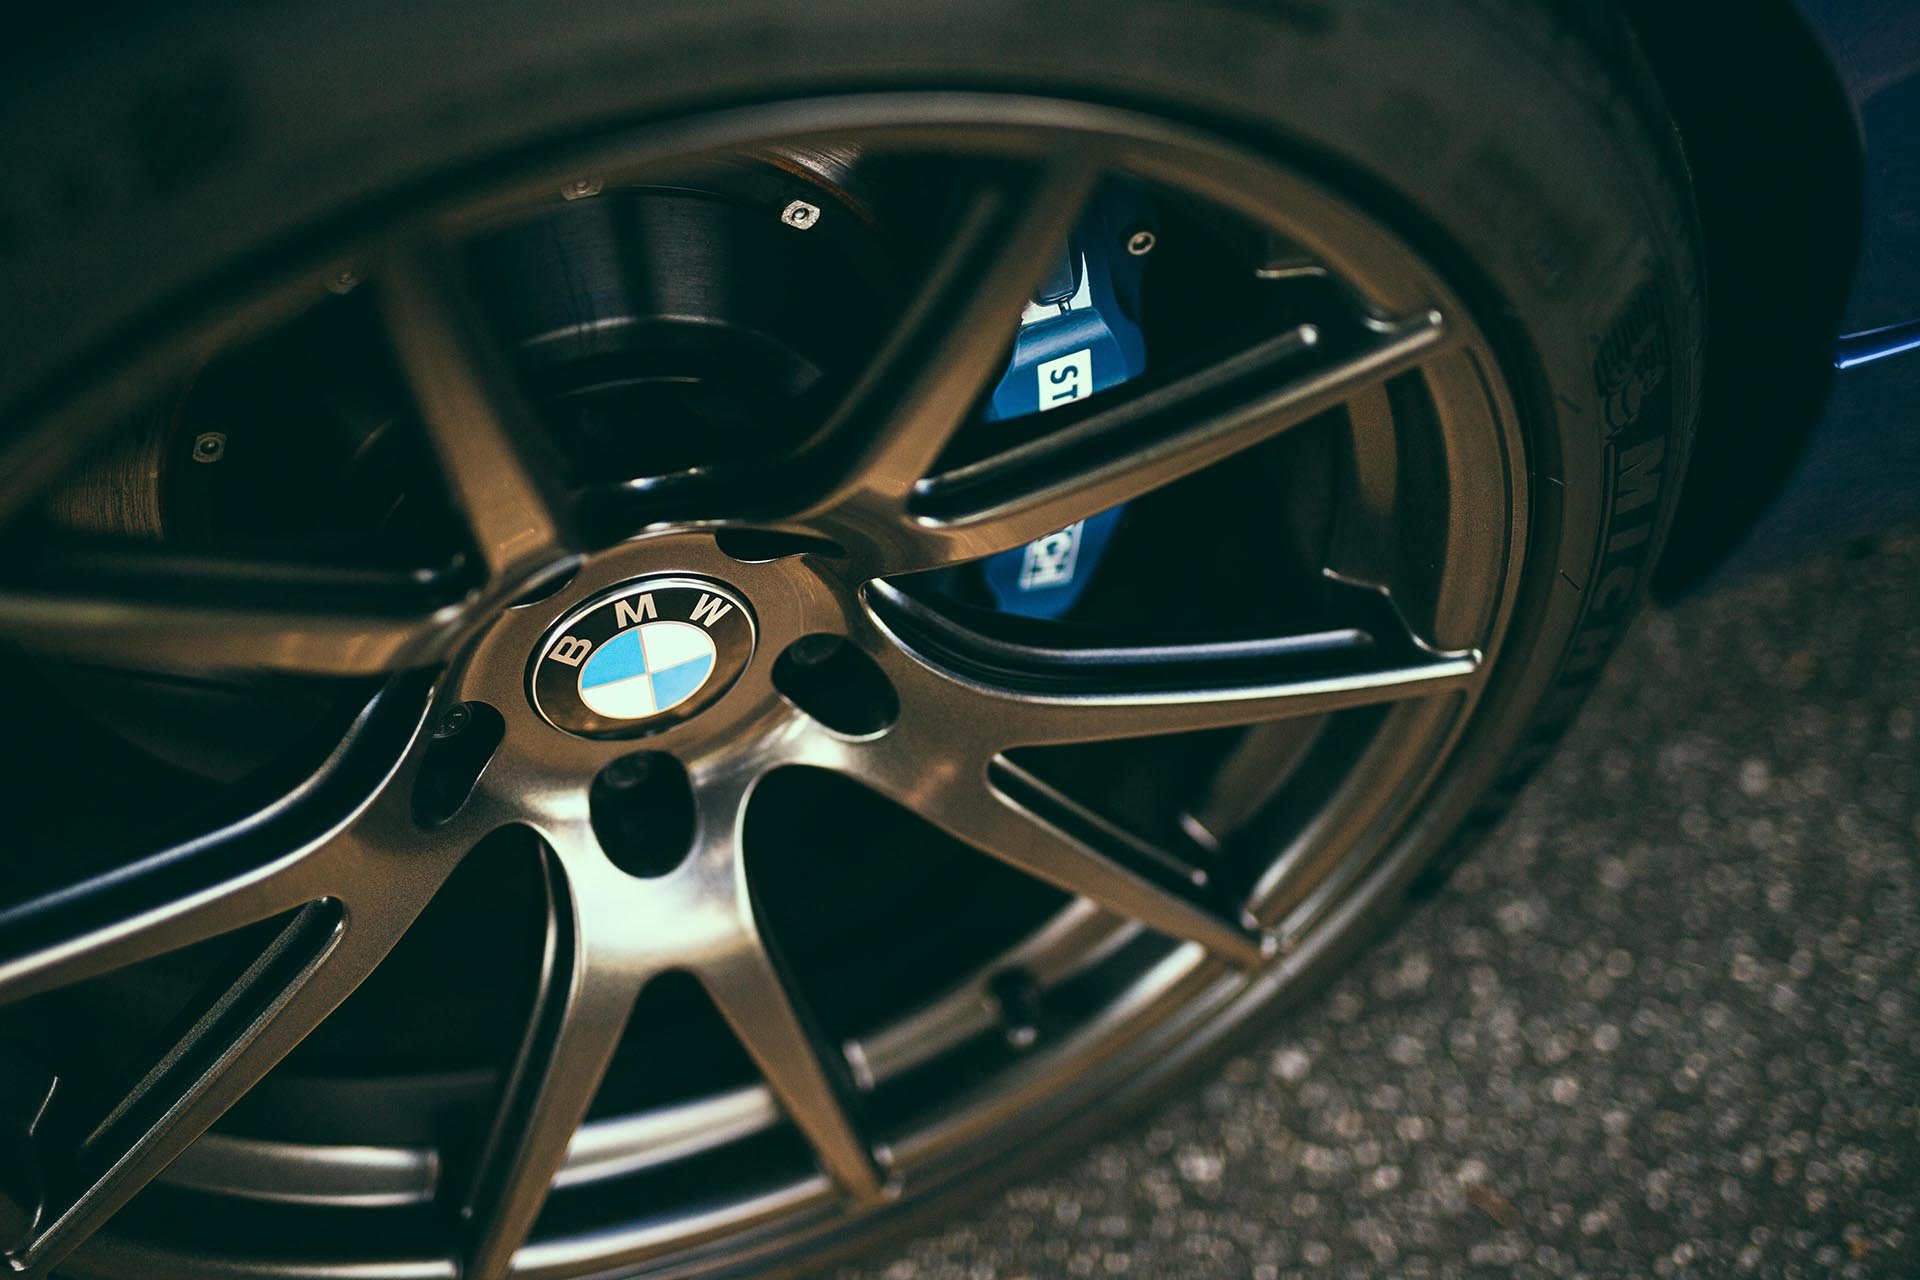 07_BMW E91 335d Wagon Bimmerworld wheel stoptech brakes